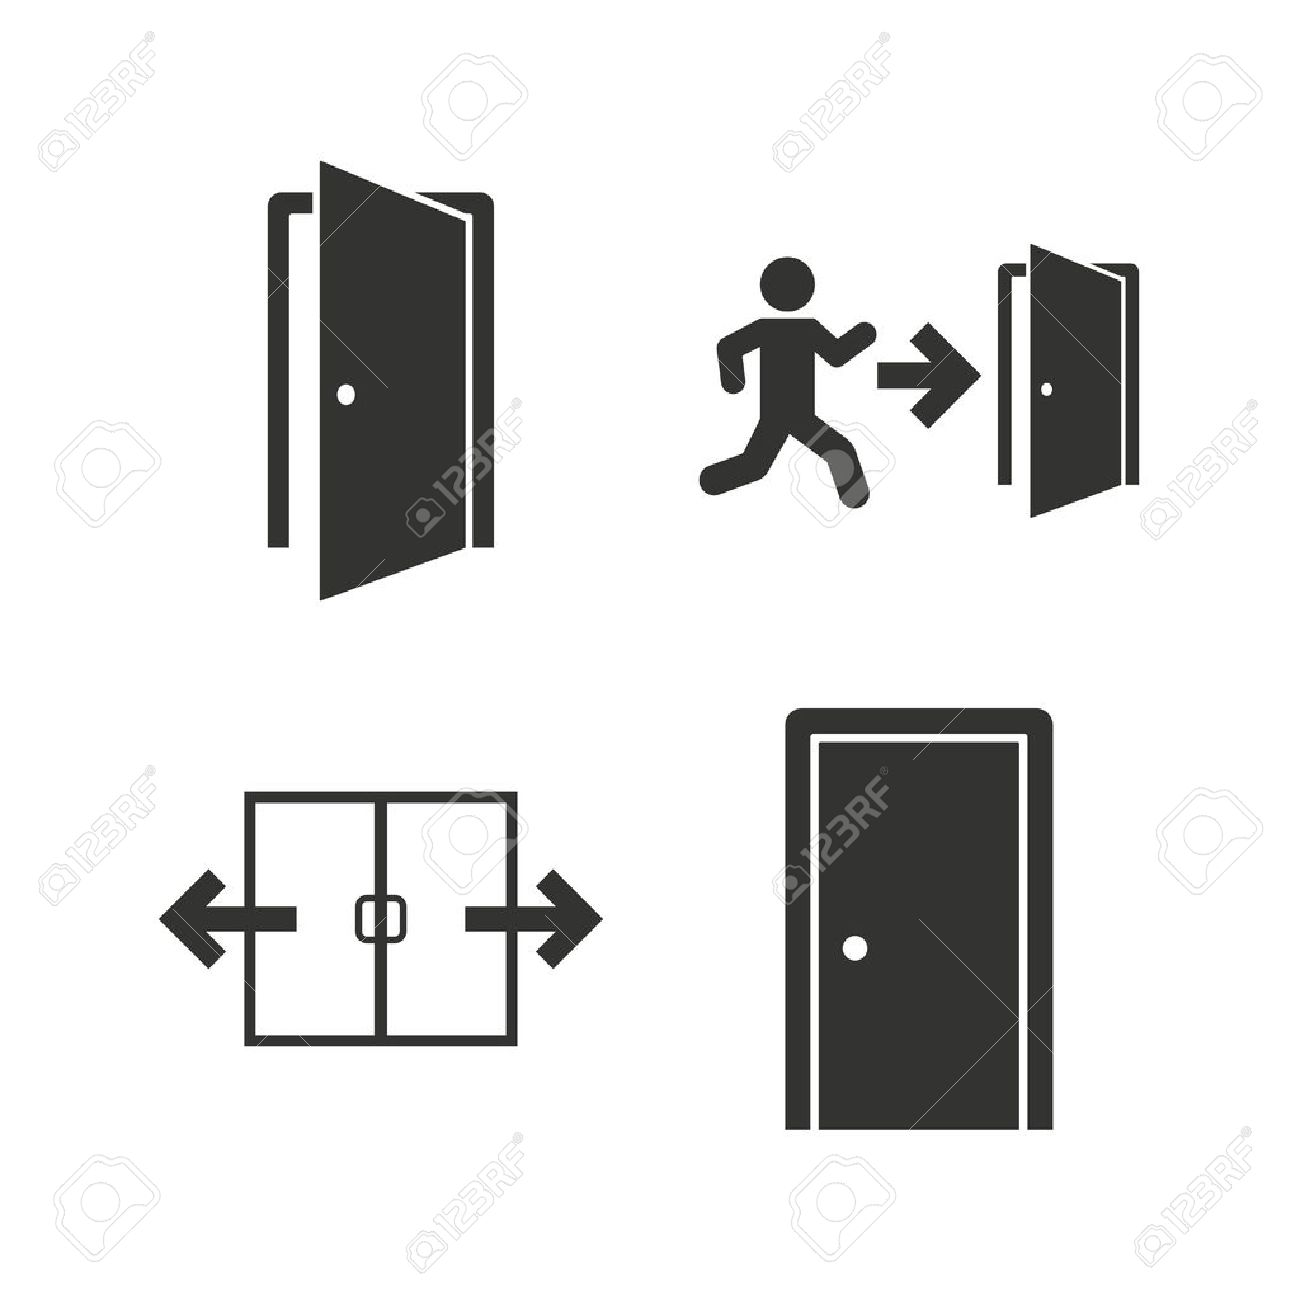 Automatic door icon. Emergency exit with human figure and arrow symbols. Fire exit signs  sc 1 st  123RF Stock Photos & Automatic Door Icon. Emergency Exit With Human Figure And Arrow ... pezcame.com